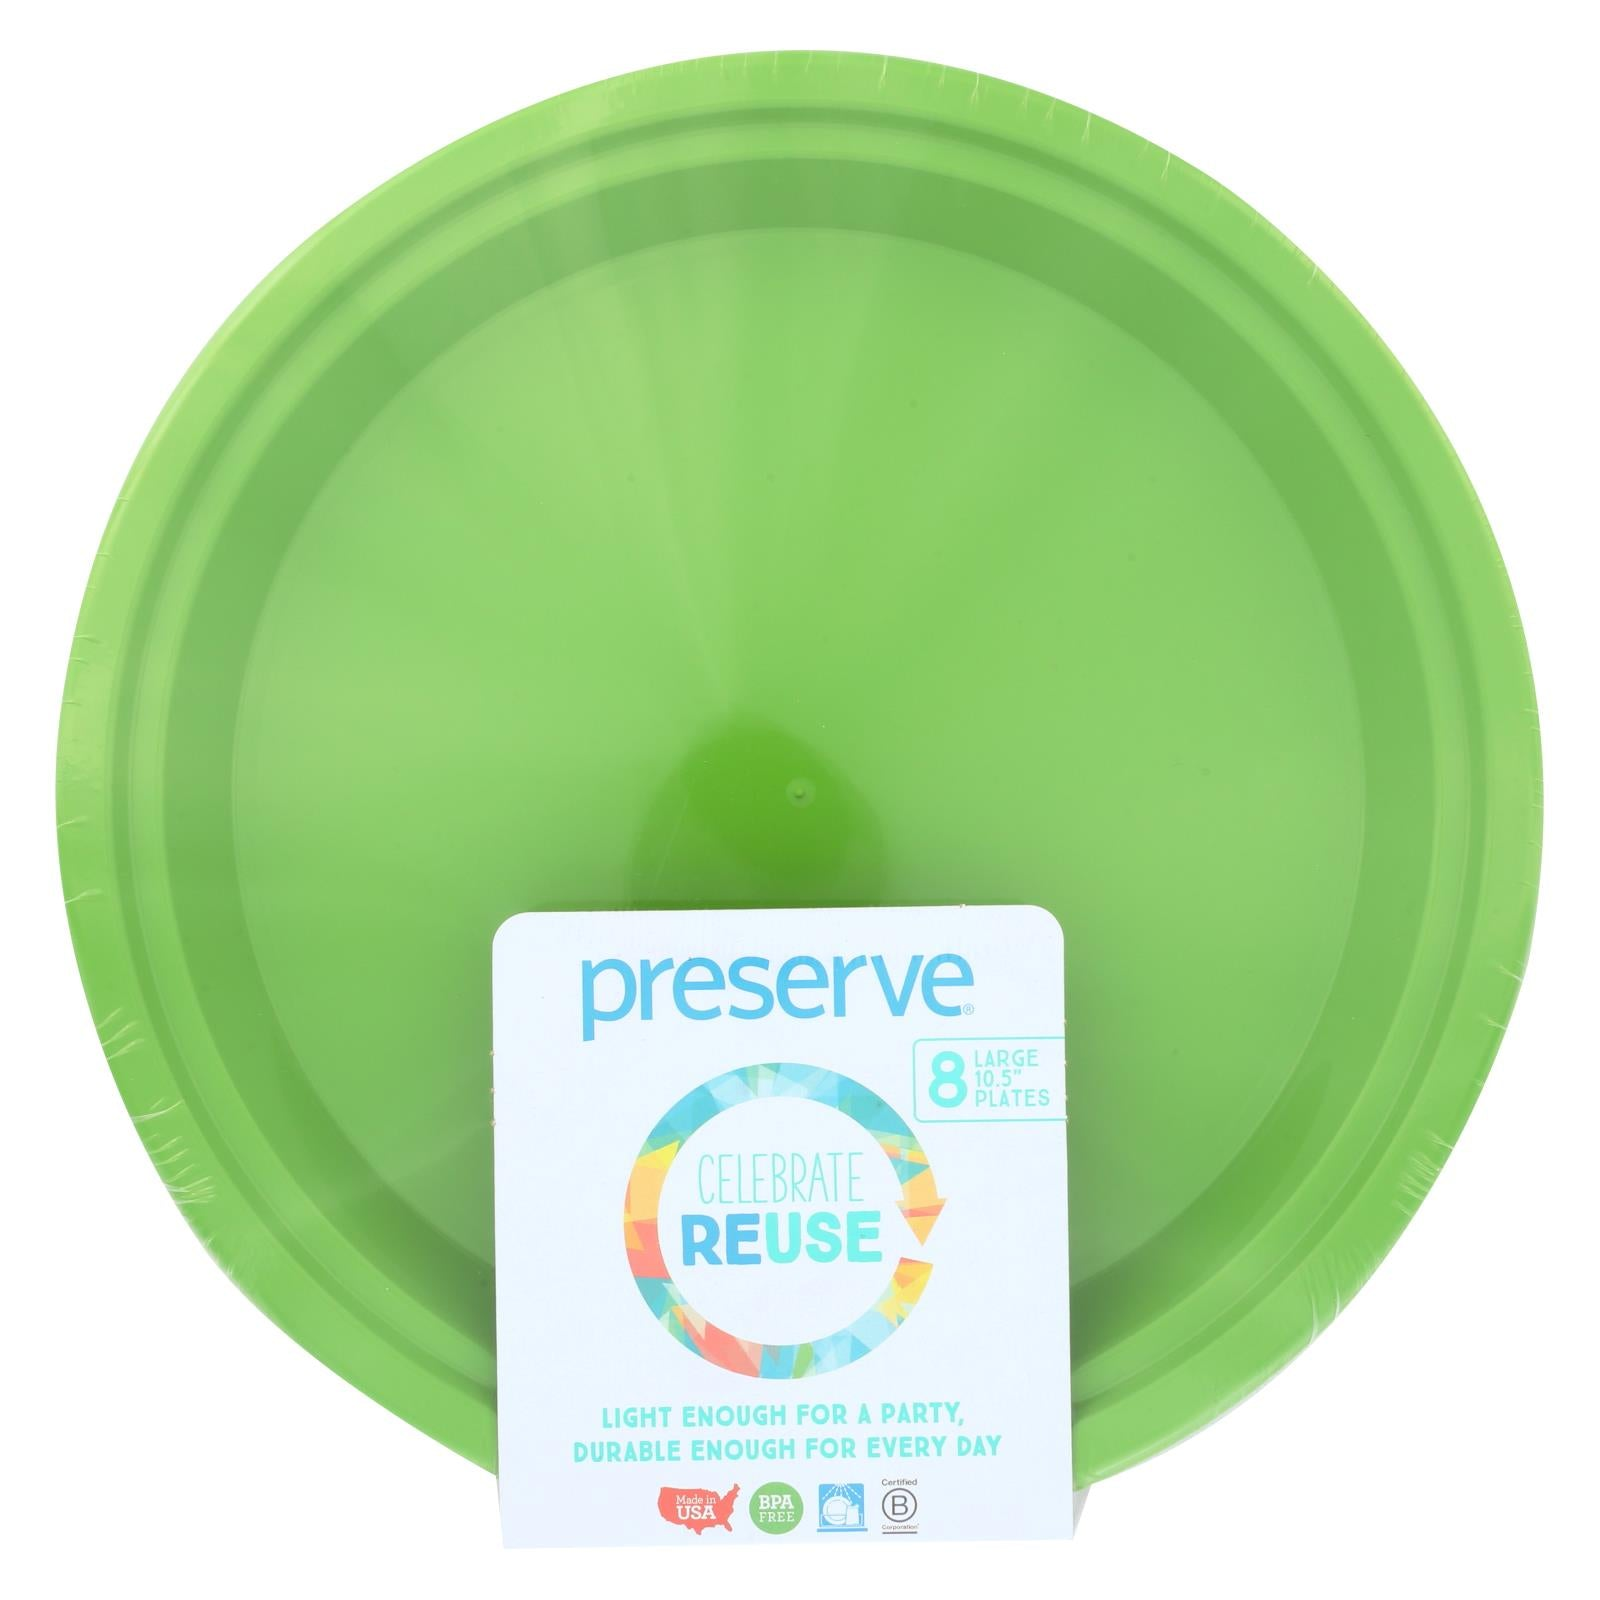 Buy Preserve On the Go Large Reusable Plates - Apple Green - 8 Pack - 10.5 in - Tableware from Veroeco.com